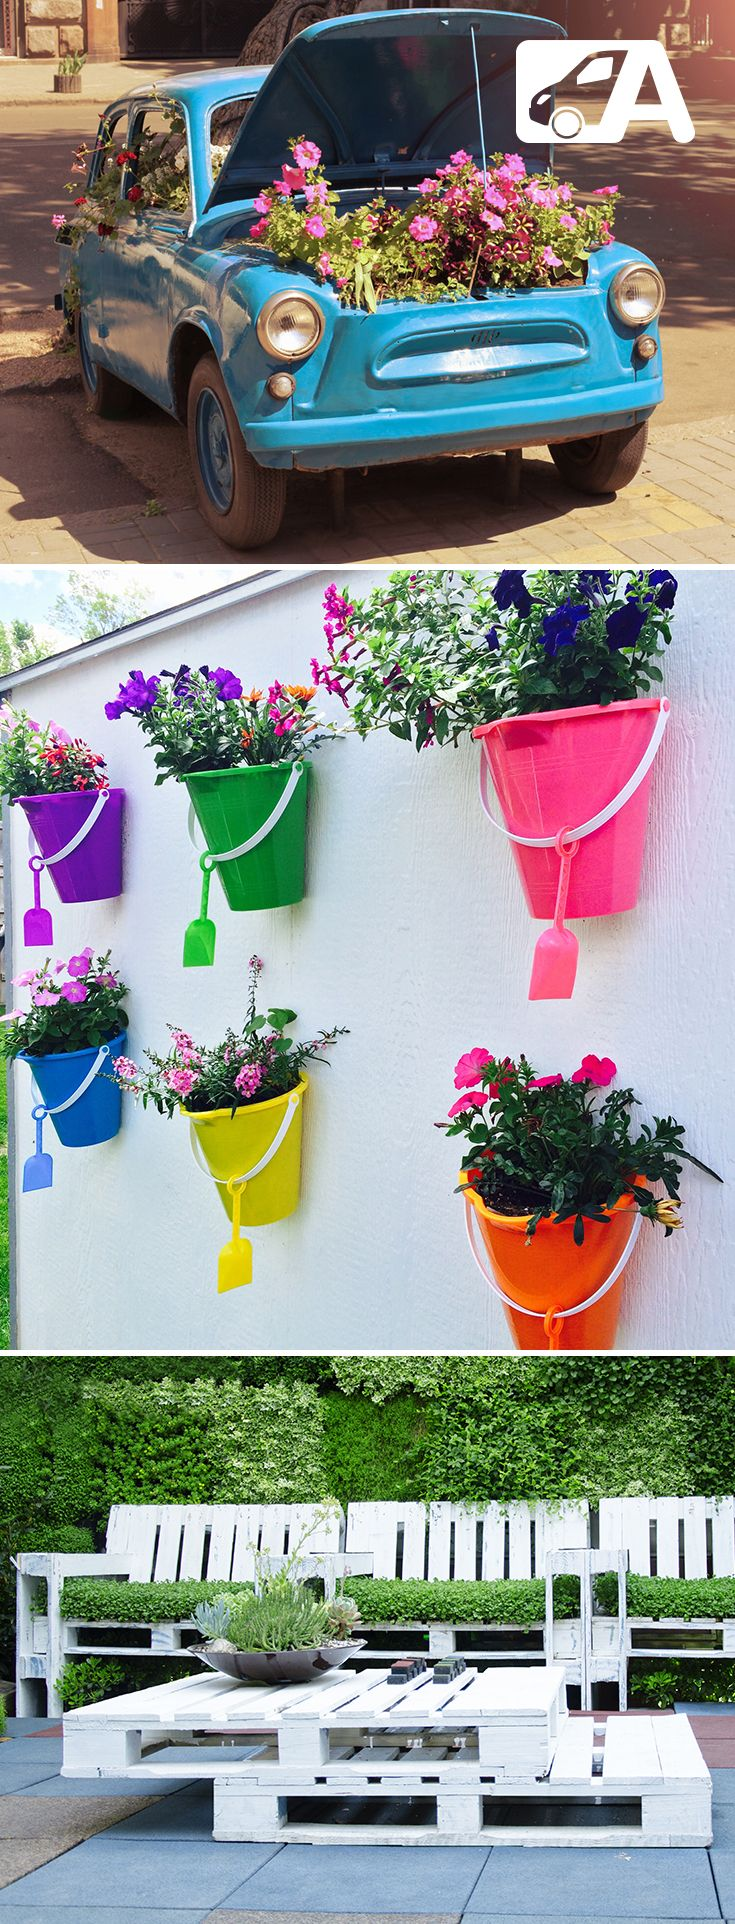 6 DIY projects to transform your garden this spring. Moving beautiful things since 2009. We move anything, anywhere.